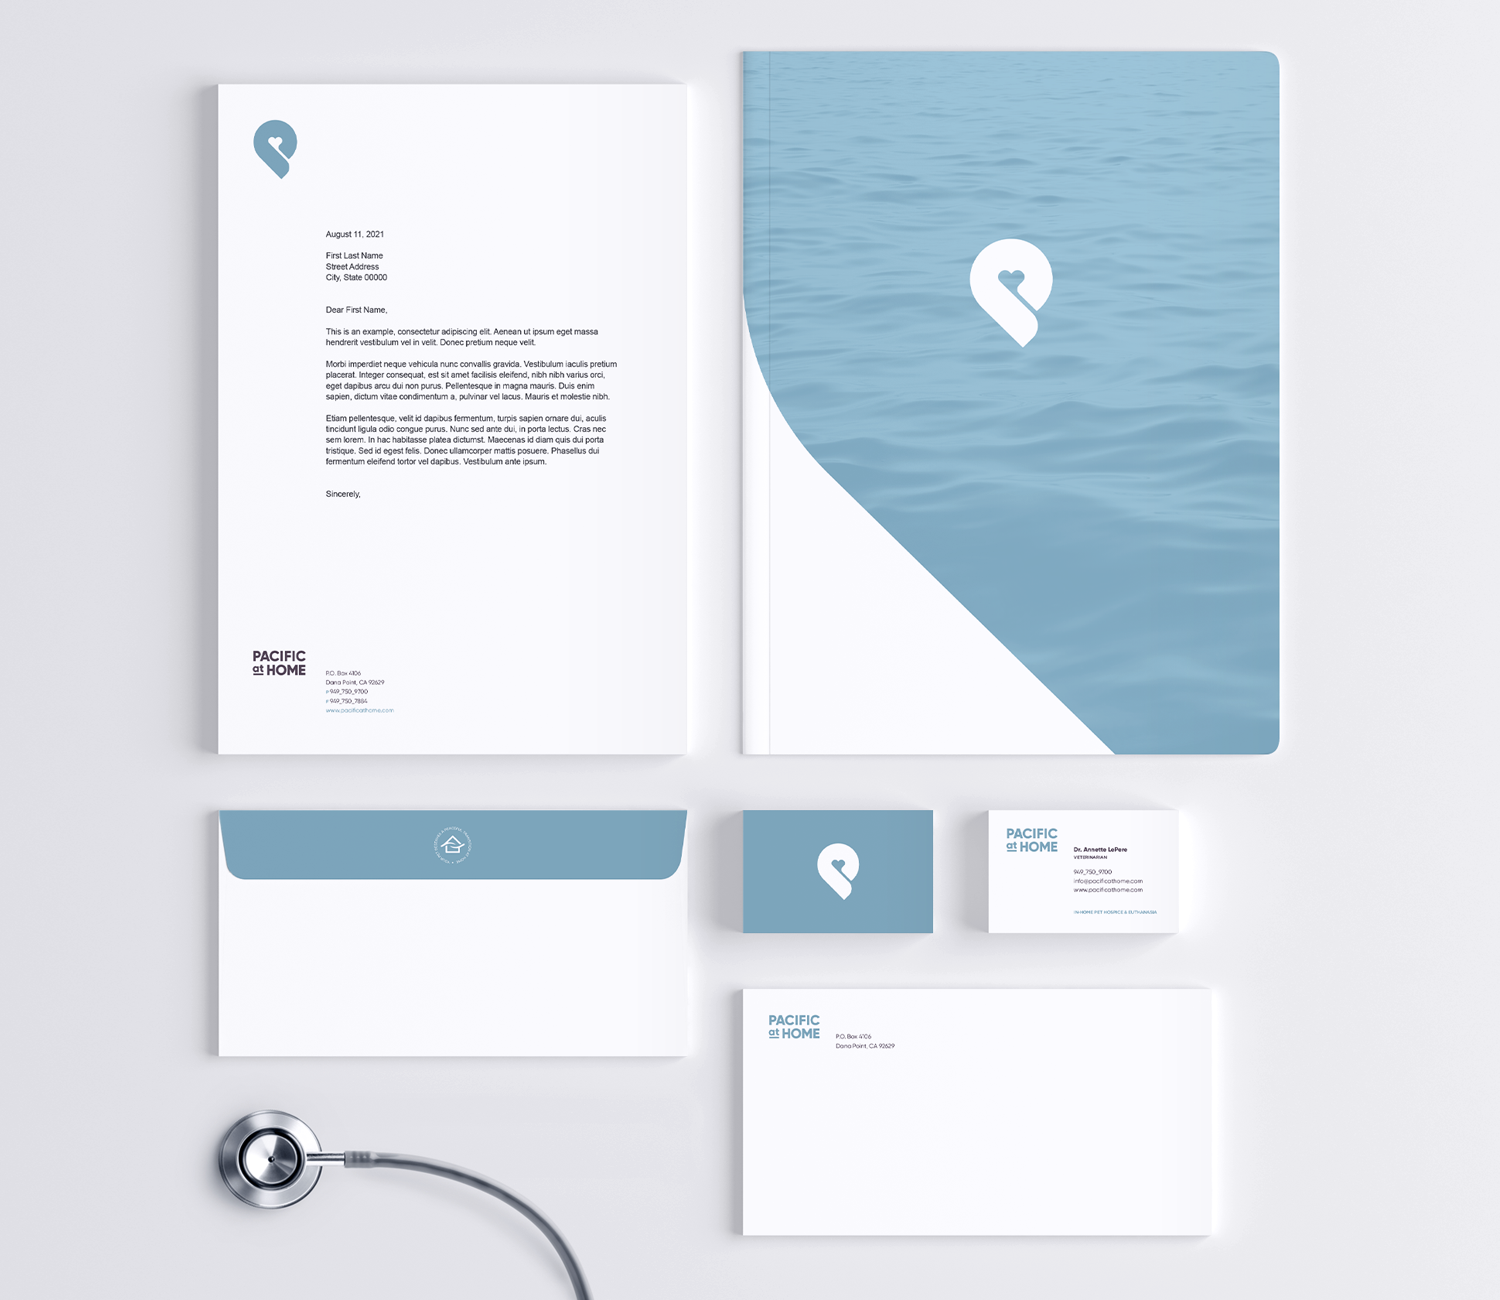 Pacific at Home visual identity stationery system print collateral